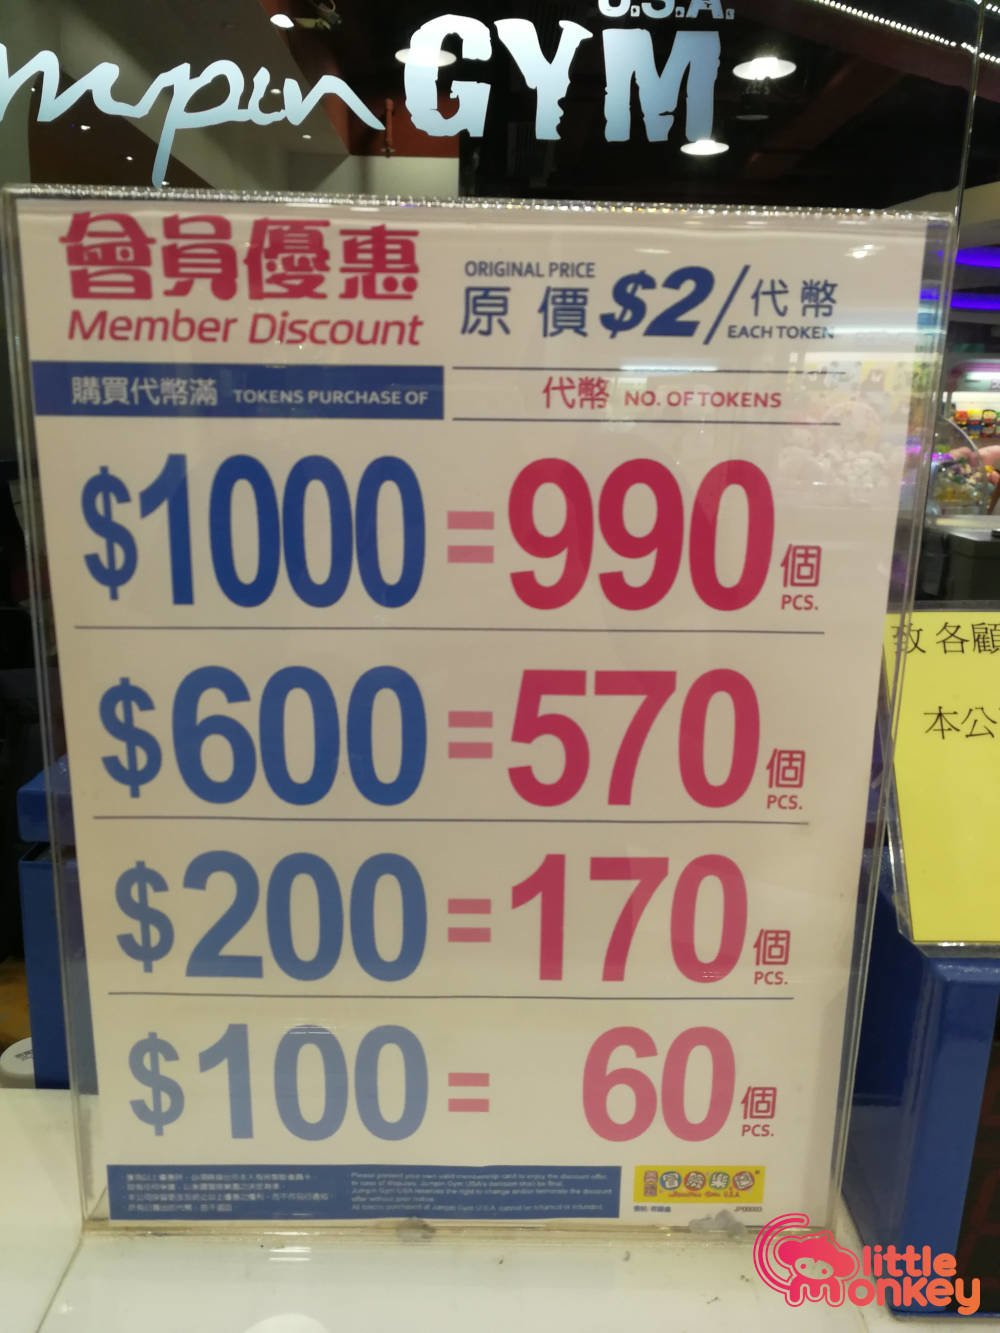 Cityplaza's token discount of each member in Jumpin Gym USA.